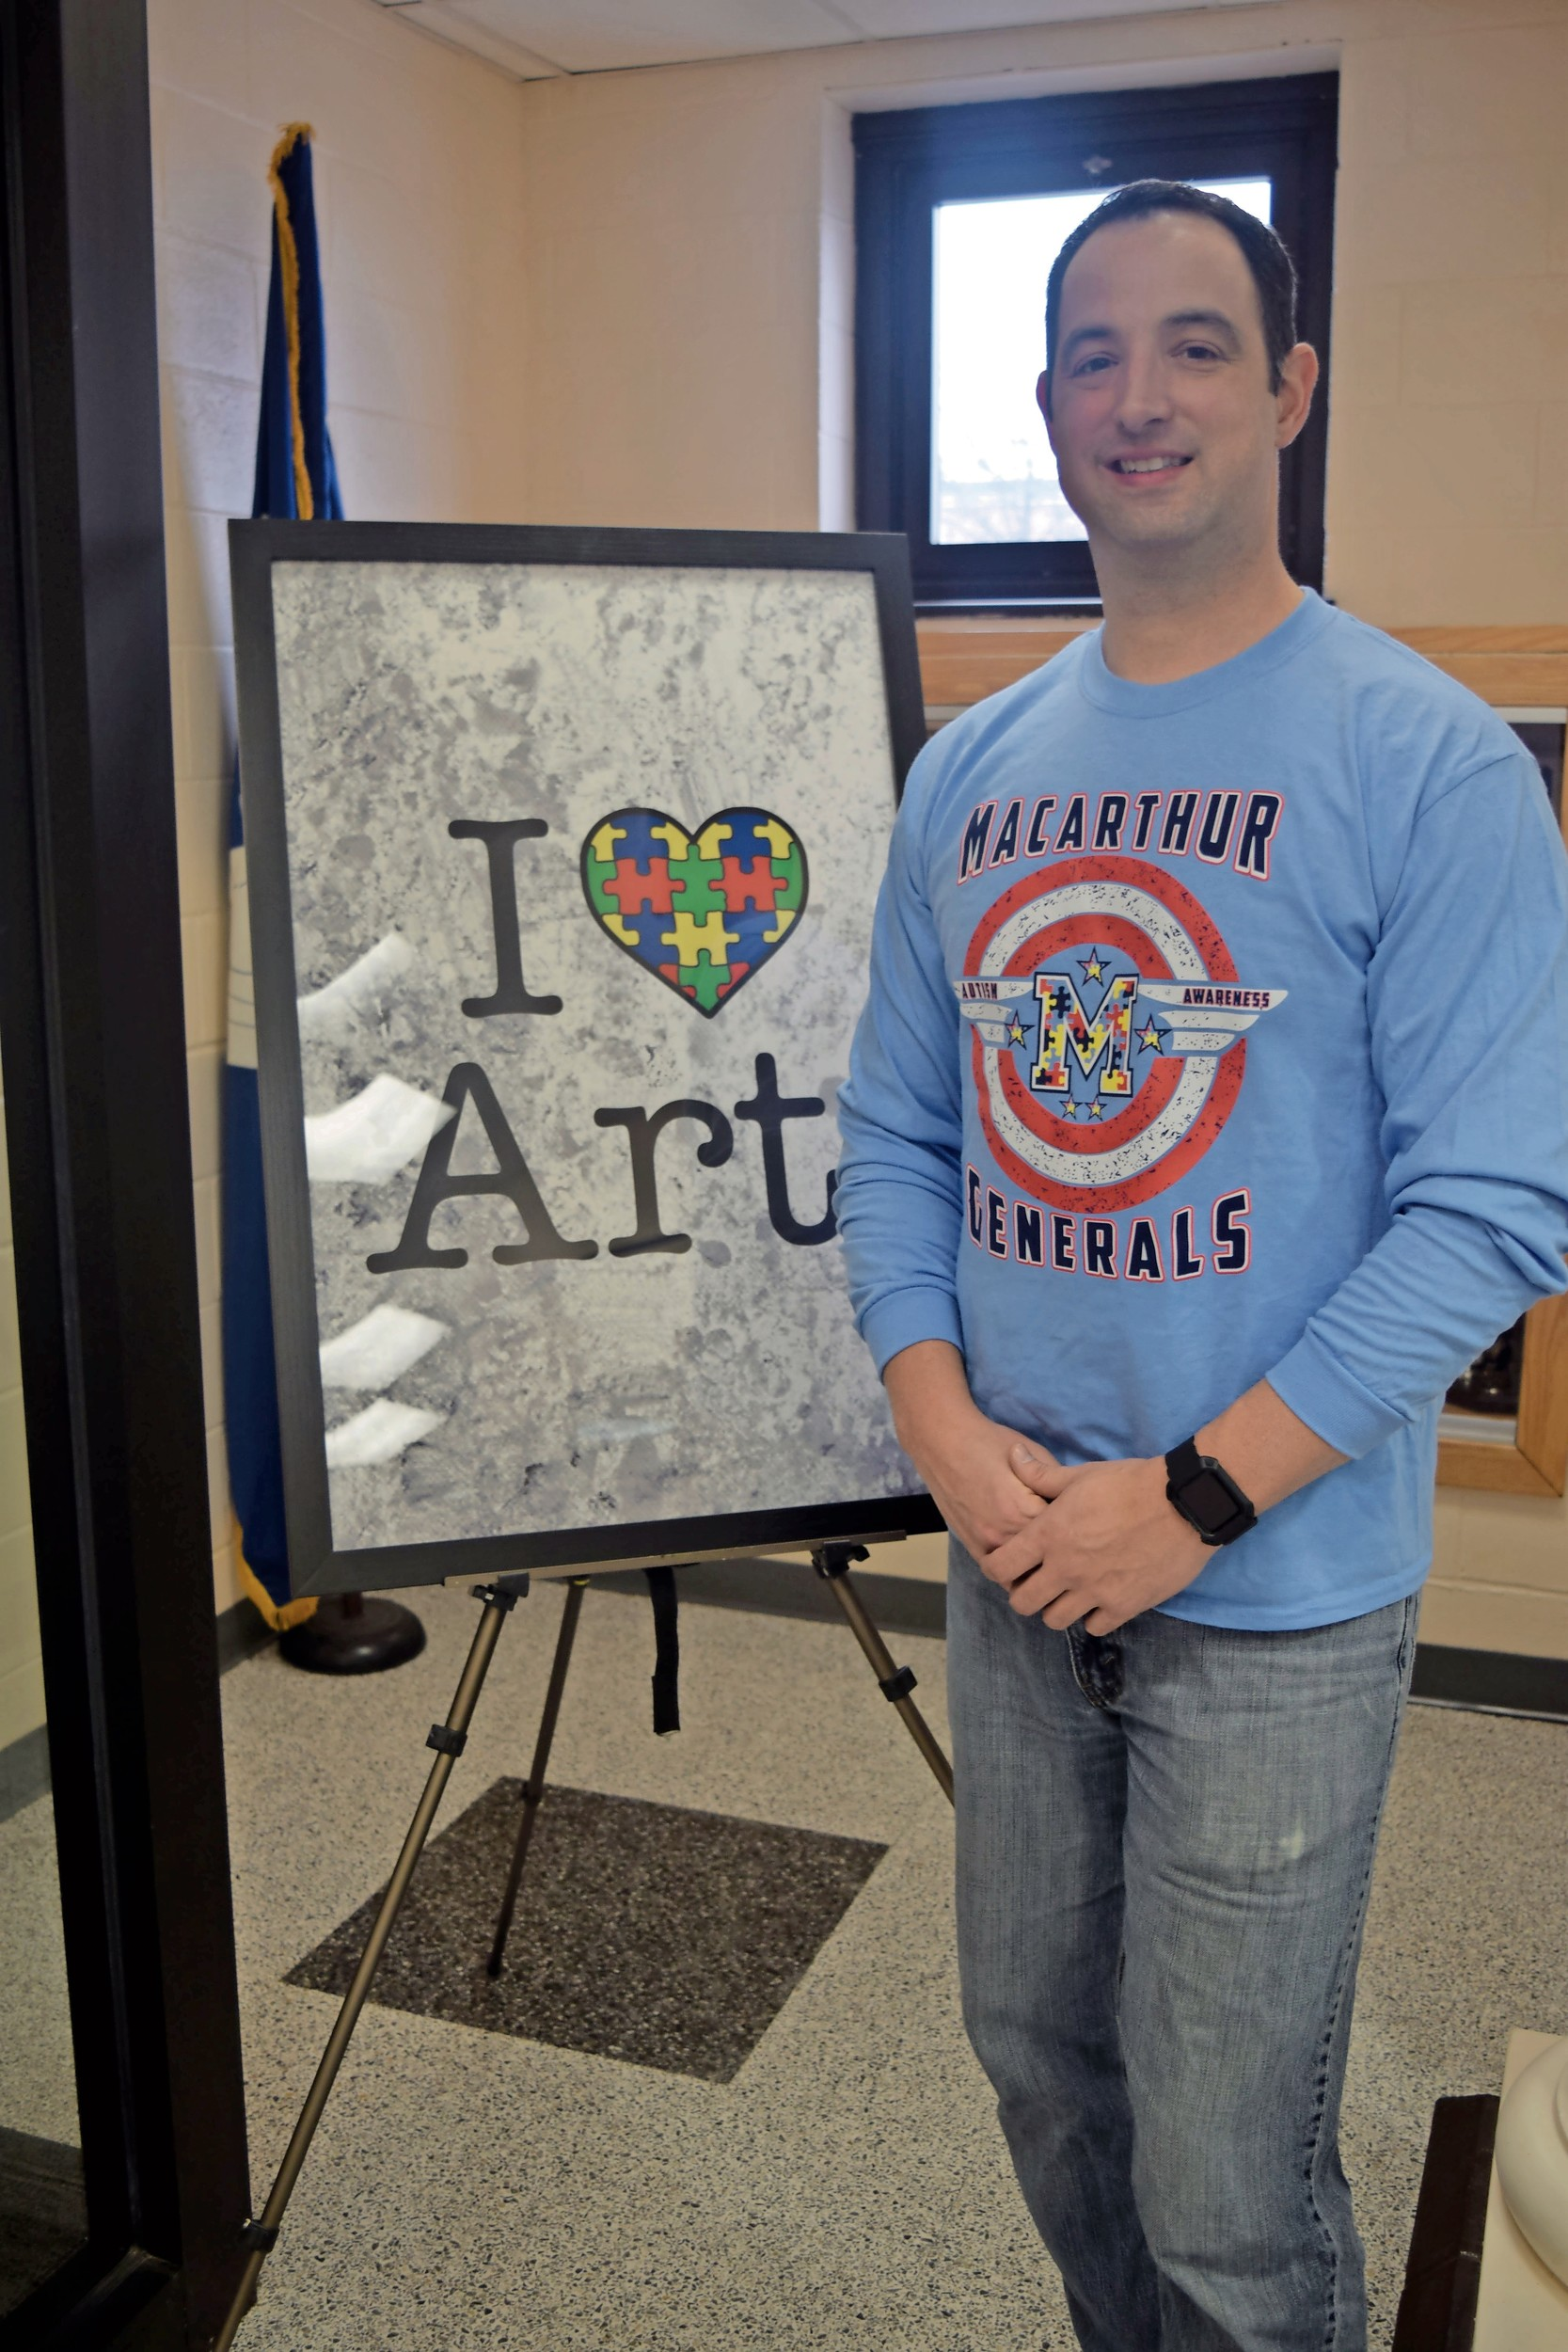 Vincent Causeman, a MacArthur High School social studies teacher, spearheads projects and events to raise awareness of autism and similar disorders in the high school and community.